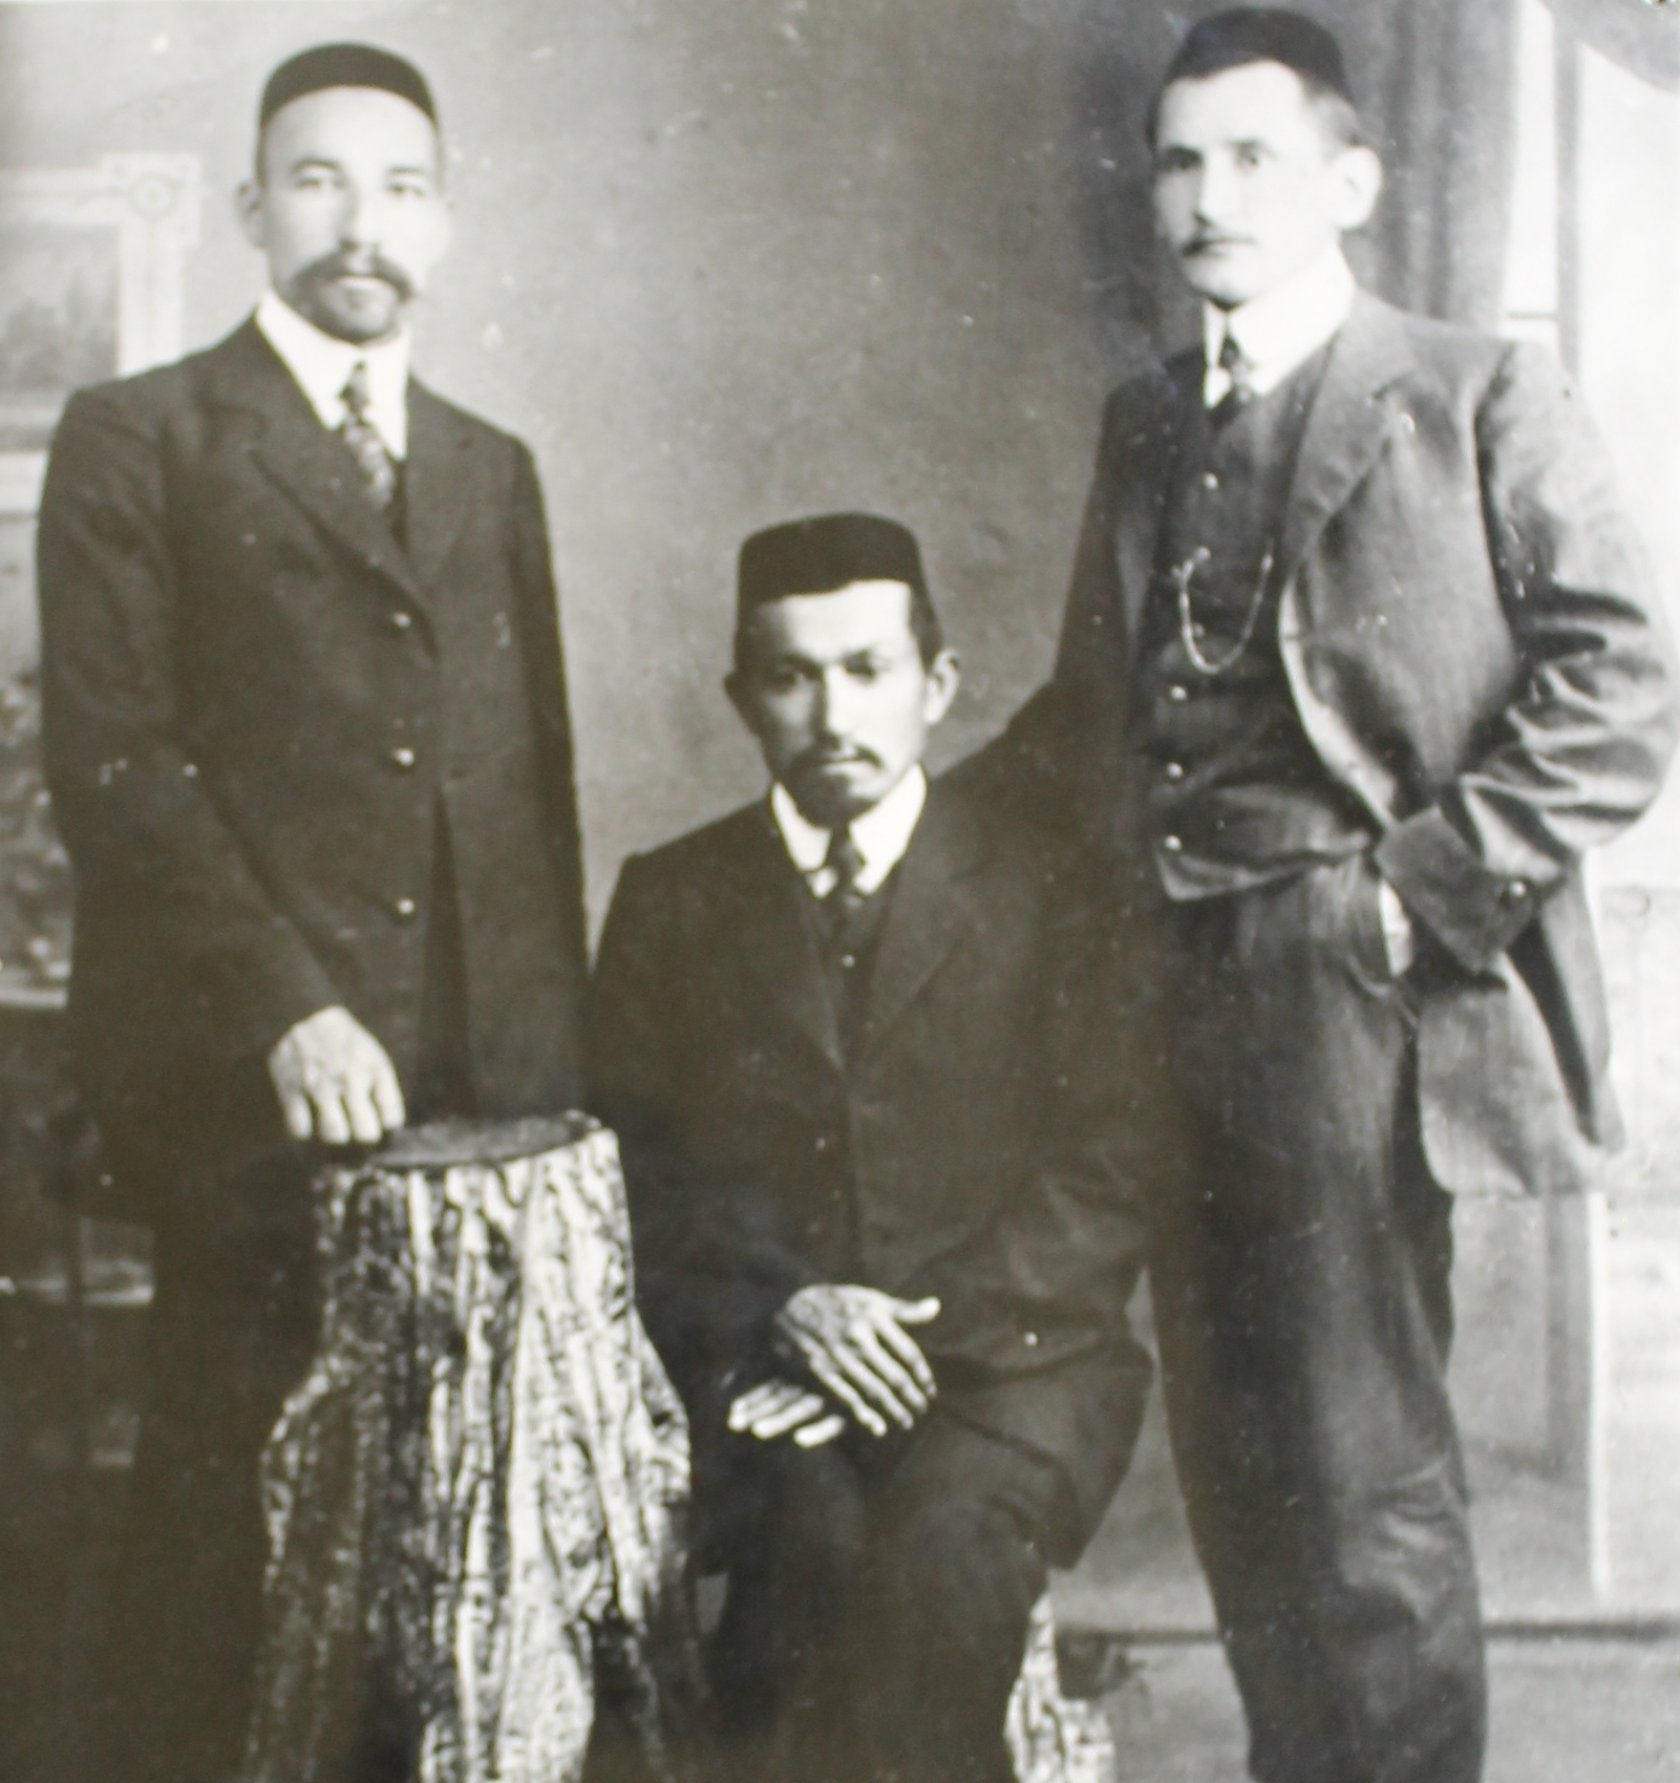 The first teachers of the Muslim school (left to right) S. Nadyrshin, Z. Tairov, H. Rahimov, 1906.